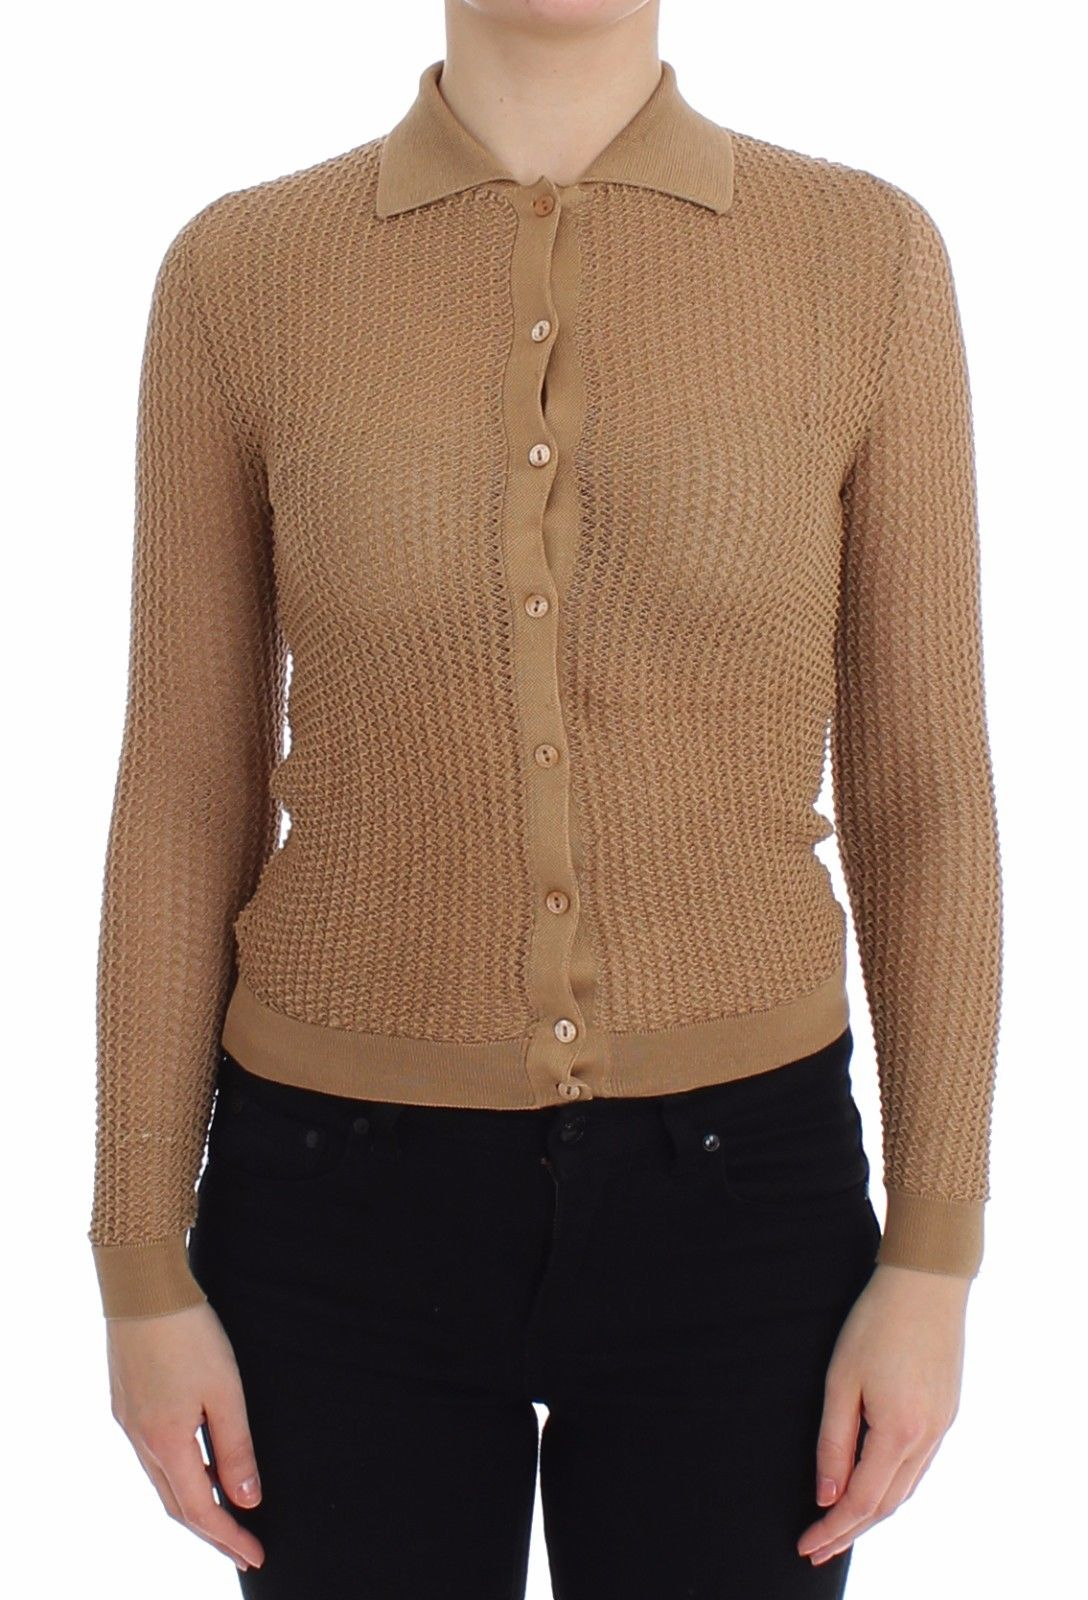 Image of Dolce & Gabbana Beige Knitted Cotton Polo Cardigan Sweater